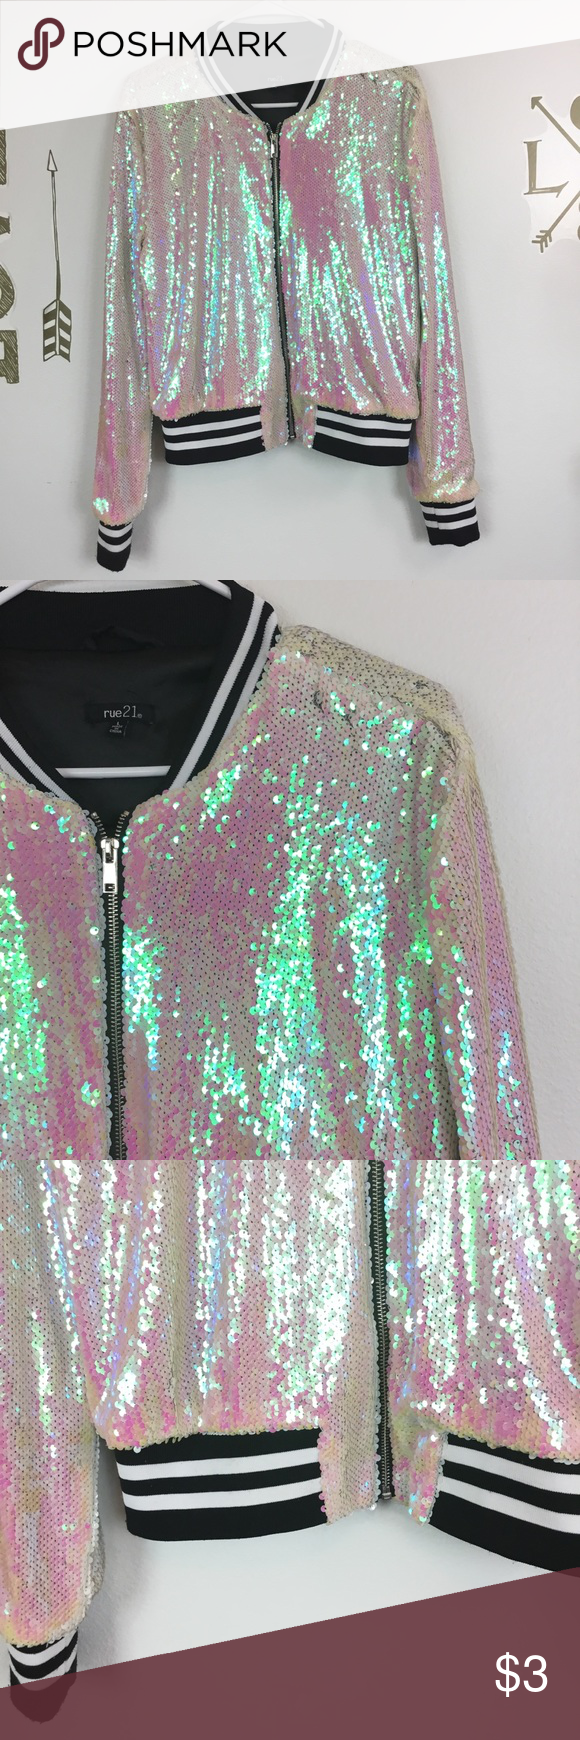 RUE 21 SEQUINED VARSITY JACKET RUE 21 IRIDESCENT SEQUINED VARSITY JACKET size large  Zips up in front Excellent condition Rue21 Jackets & Coats #varsityjacketoutfit